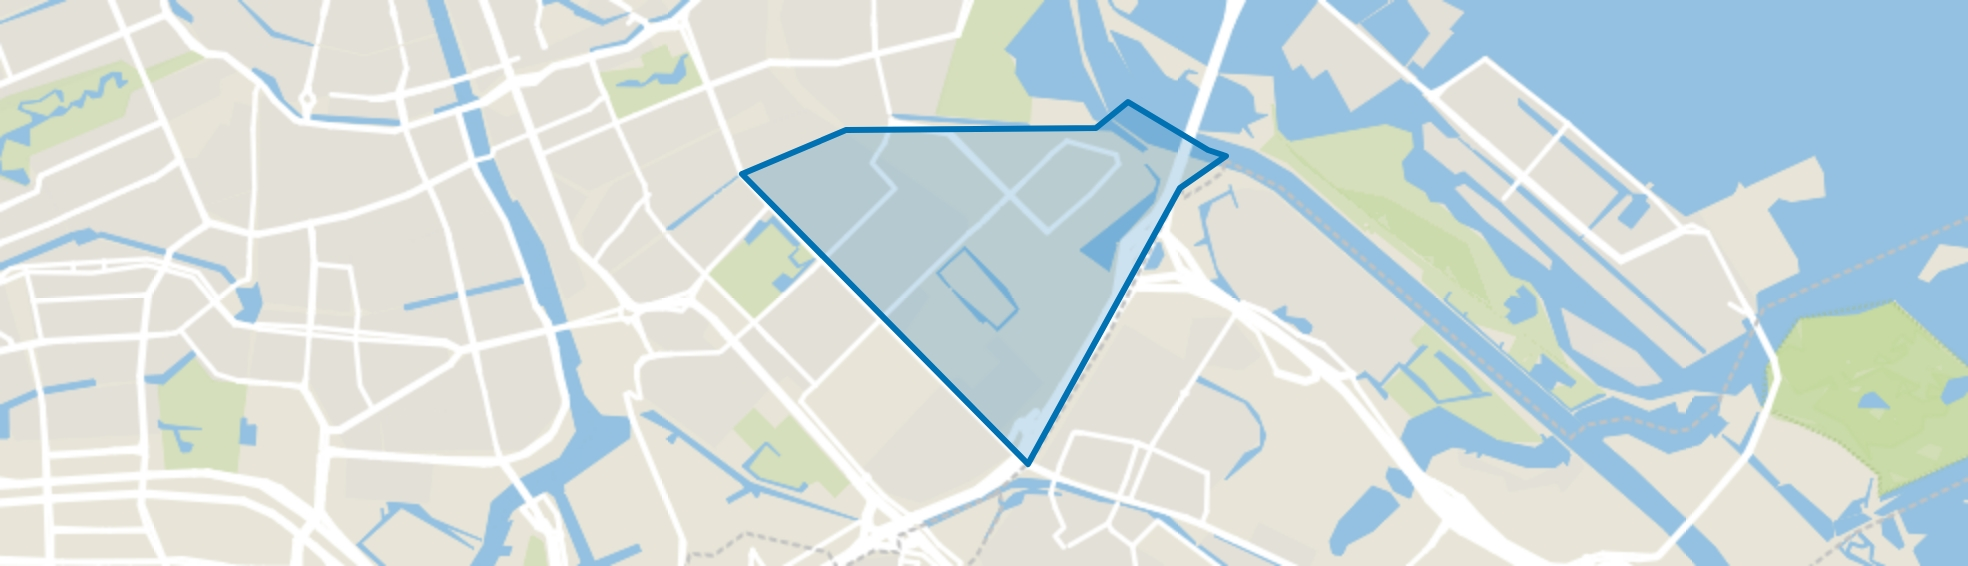 Middenmeer, Amsterdam map